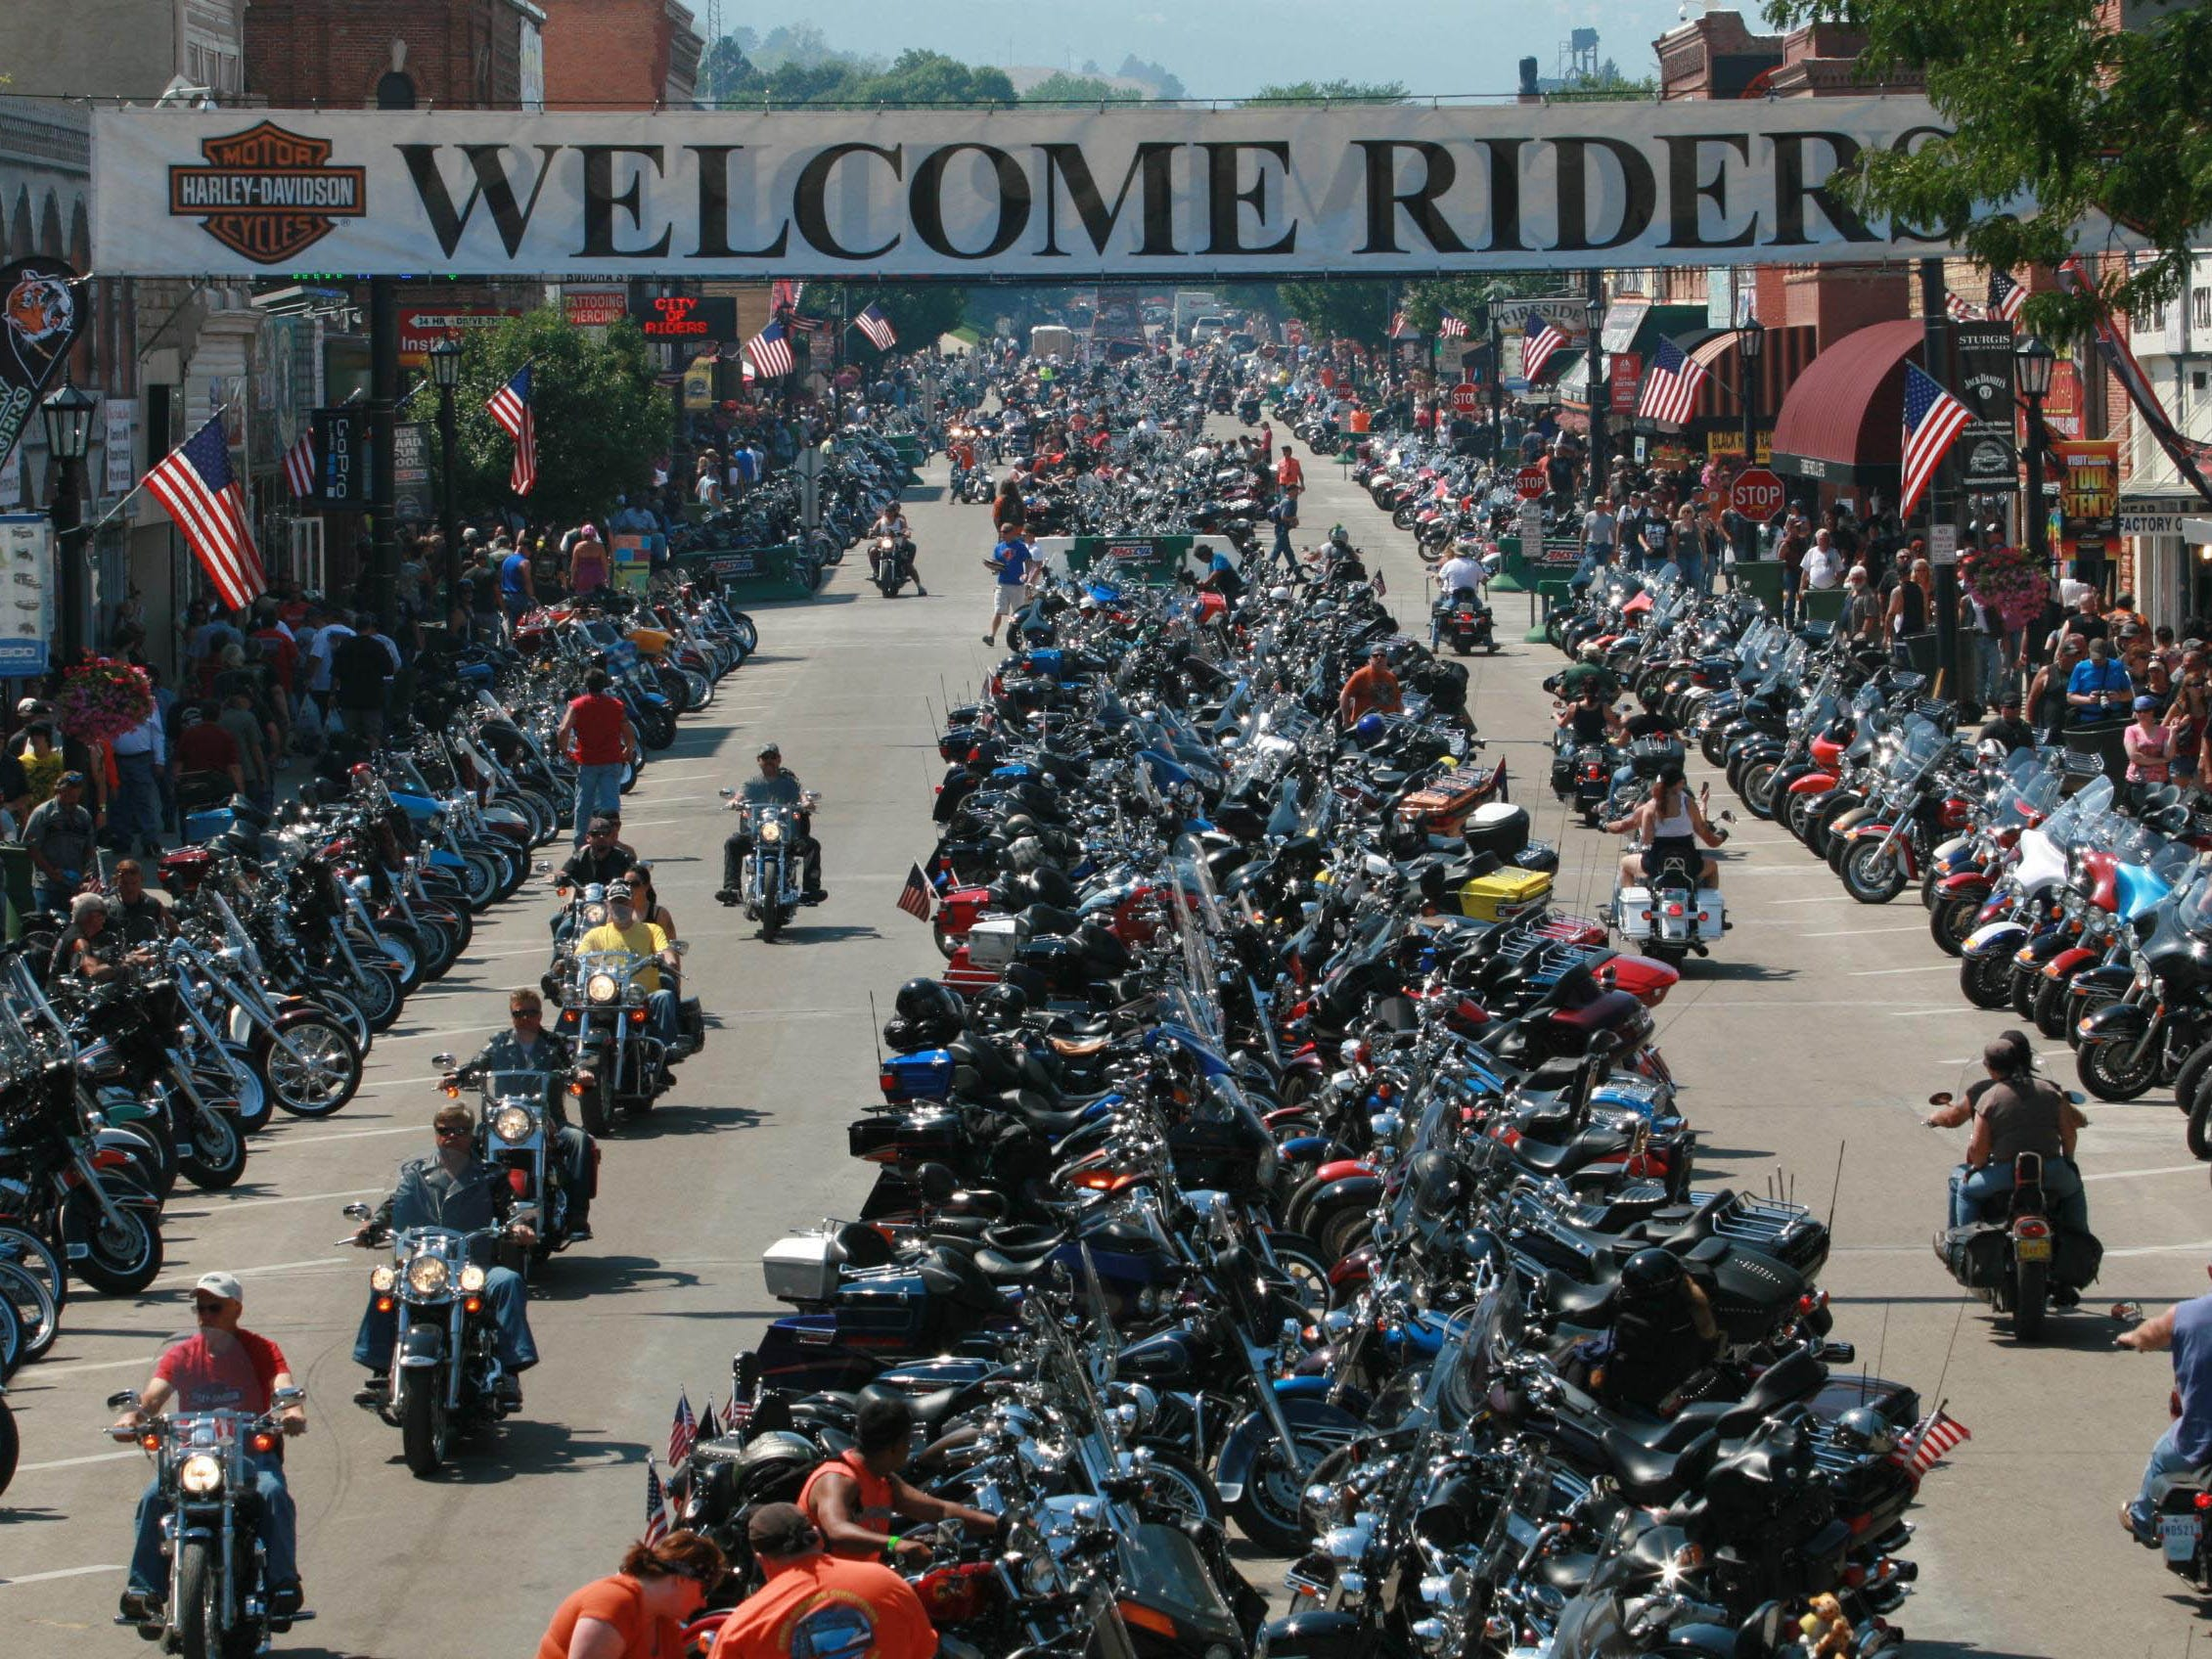 2012: Tens of thousands of motorcyclists arrive at the Sturgis Motorcycle Rally in Sturgis, S.D. They fill downtown Sturgis and spill over into campgrounds and surrounding communities for many miles, with around-the-clock partying.